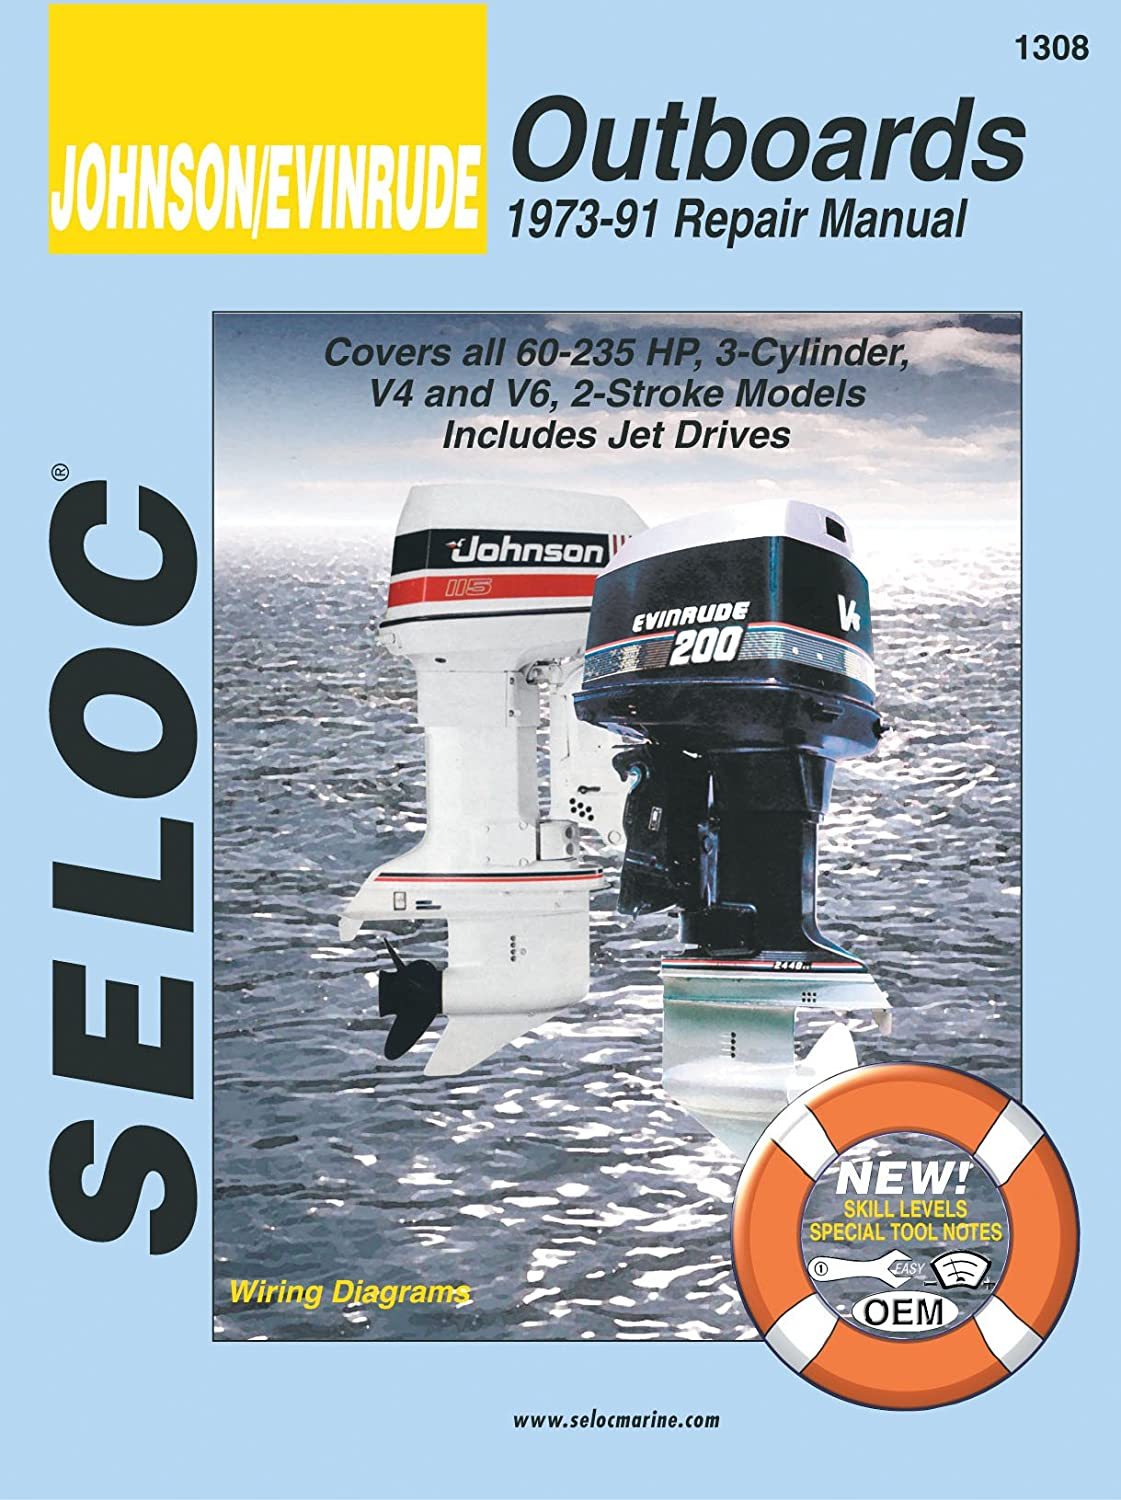 Sierra International Seloc Manual 18-01308 Johnson/Evinrude Outboards Repair 1973-1991 60-235 HP 3 Cylinder V4 & V6 2 Stroke Model Includes Jet Drive